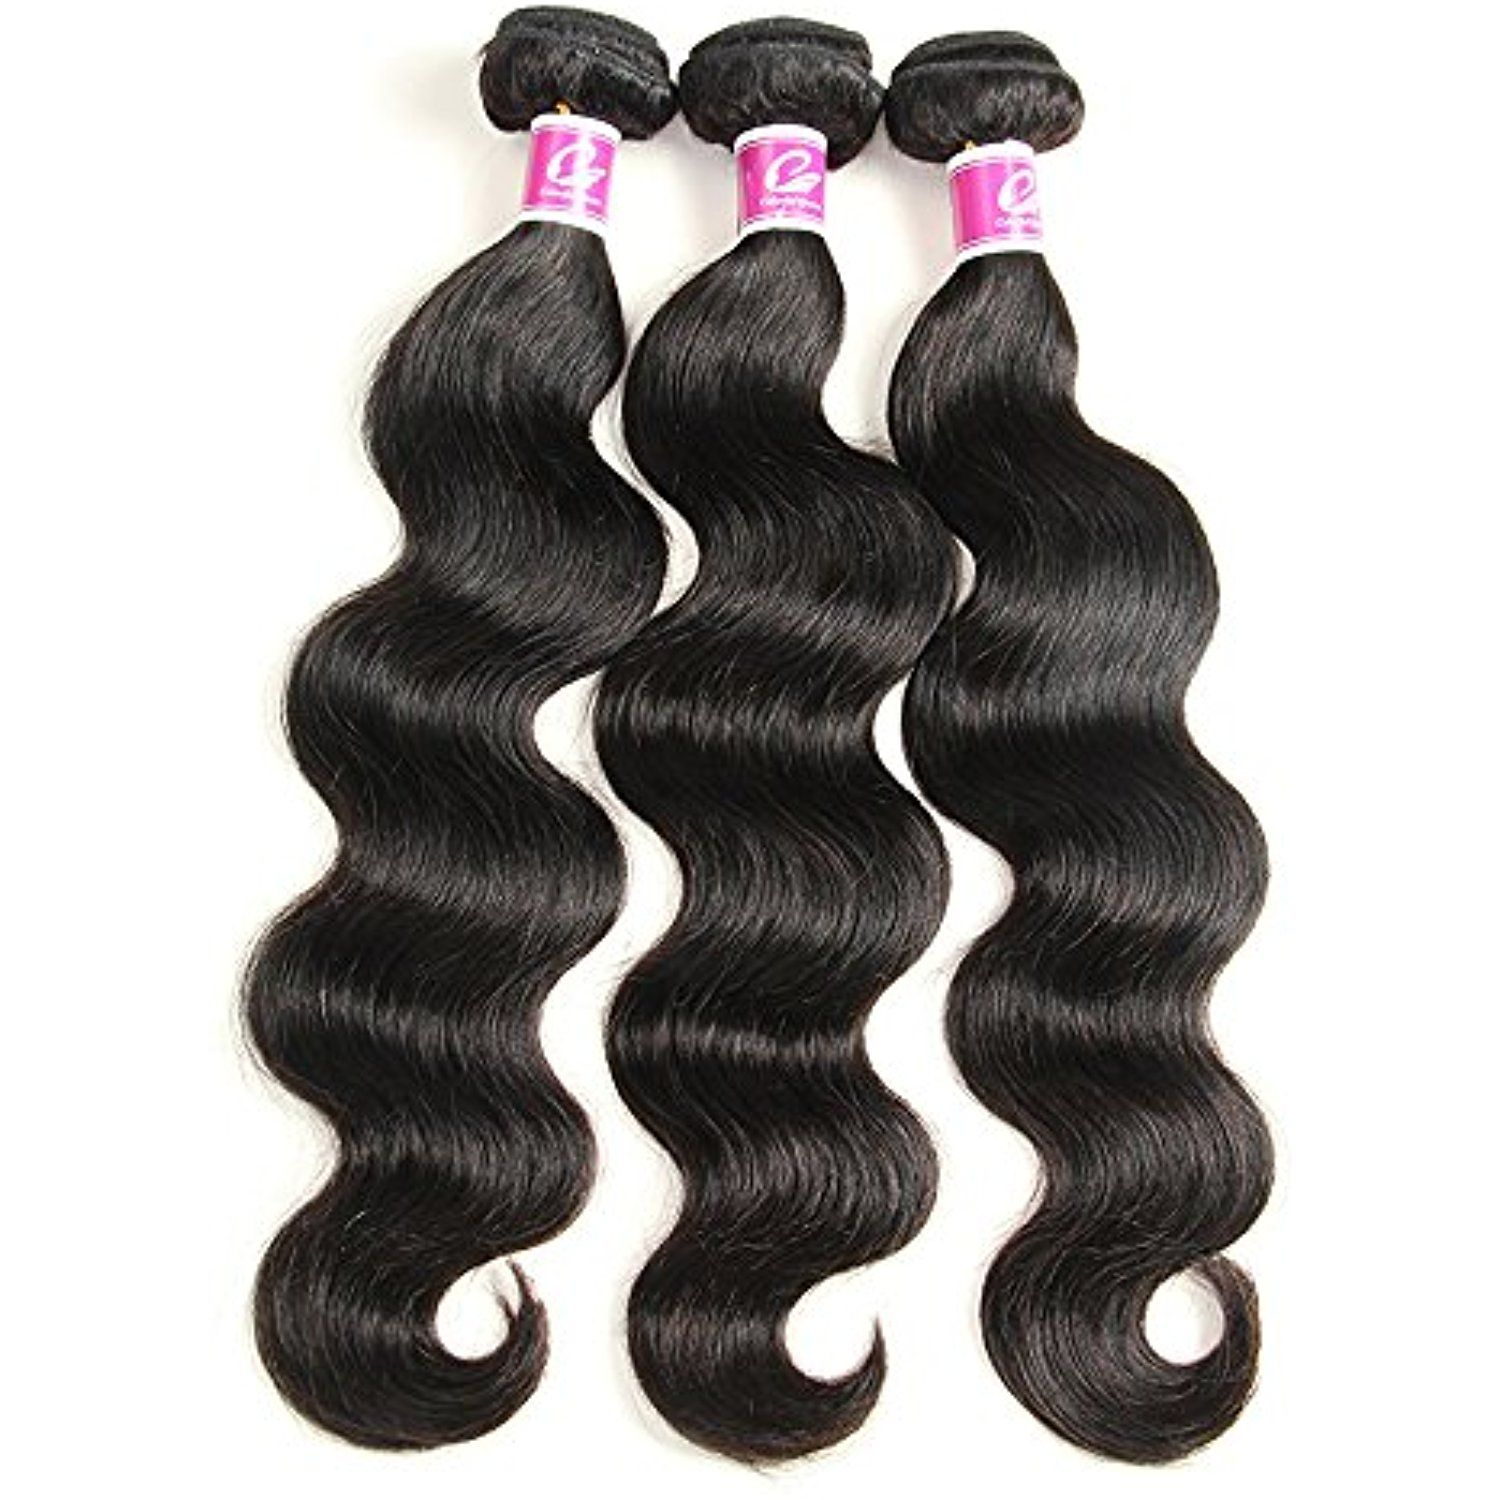 Colorful Queen Brazilian Virgin Hair Body Wave Remy Human Hair